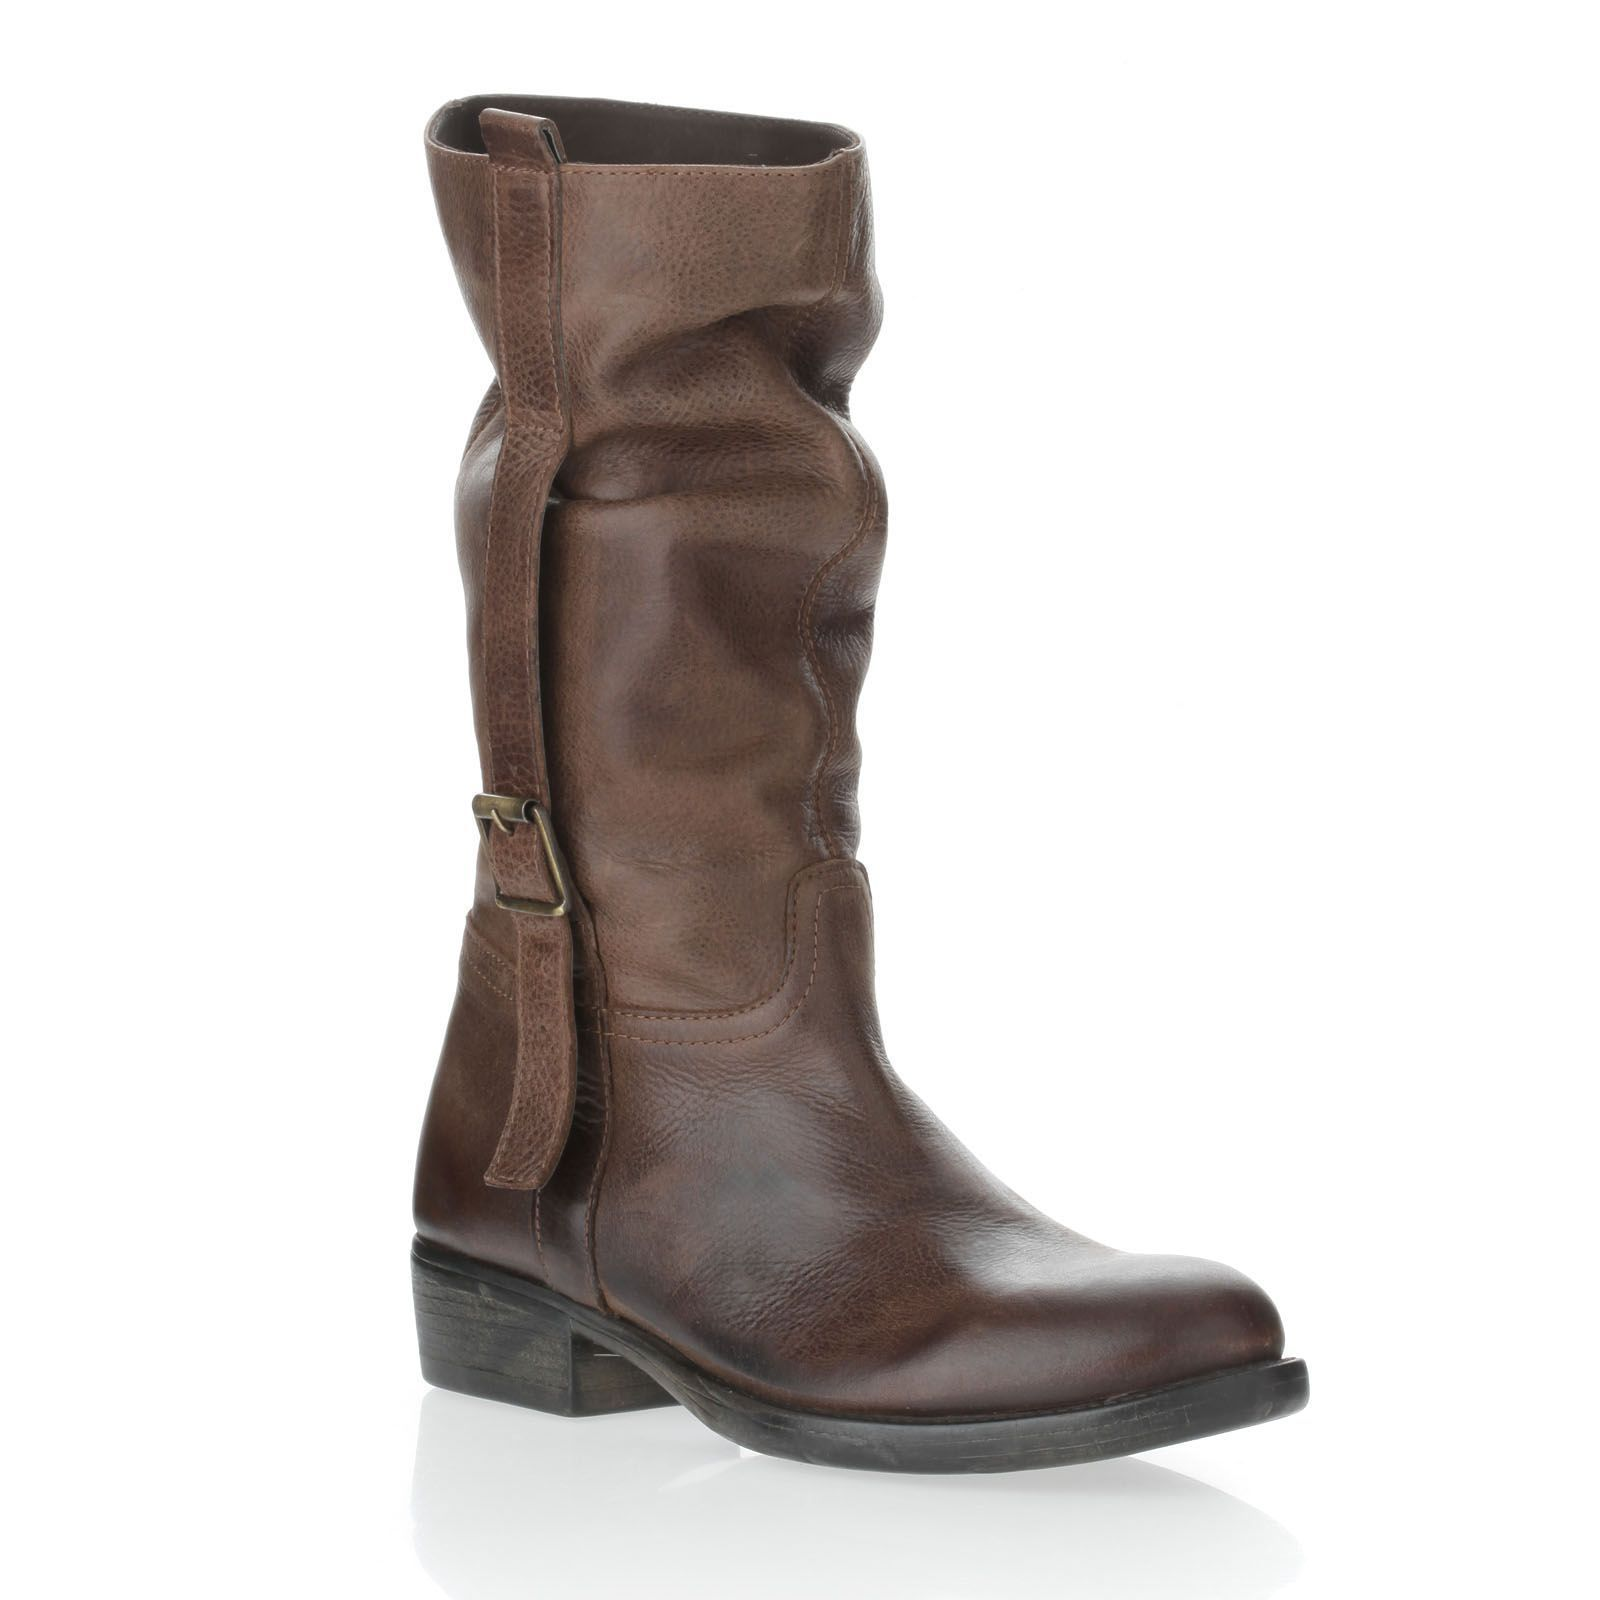 cuir en and INUOVO BagsBottes Bottes marronShoes cuir HYbIe9EWD2